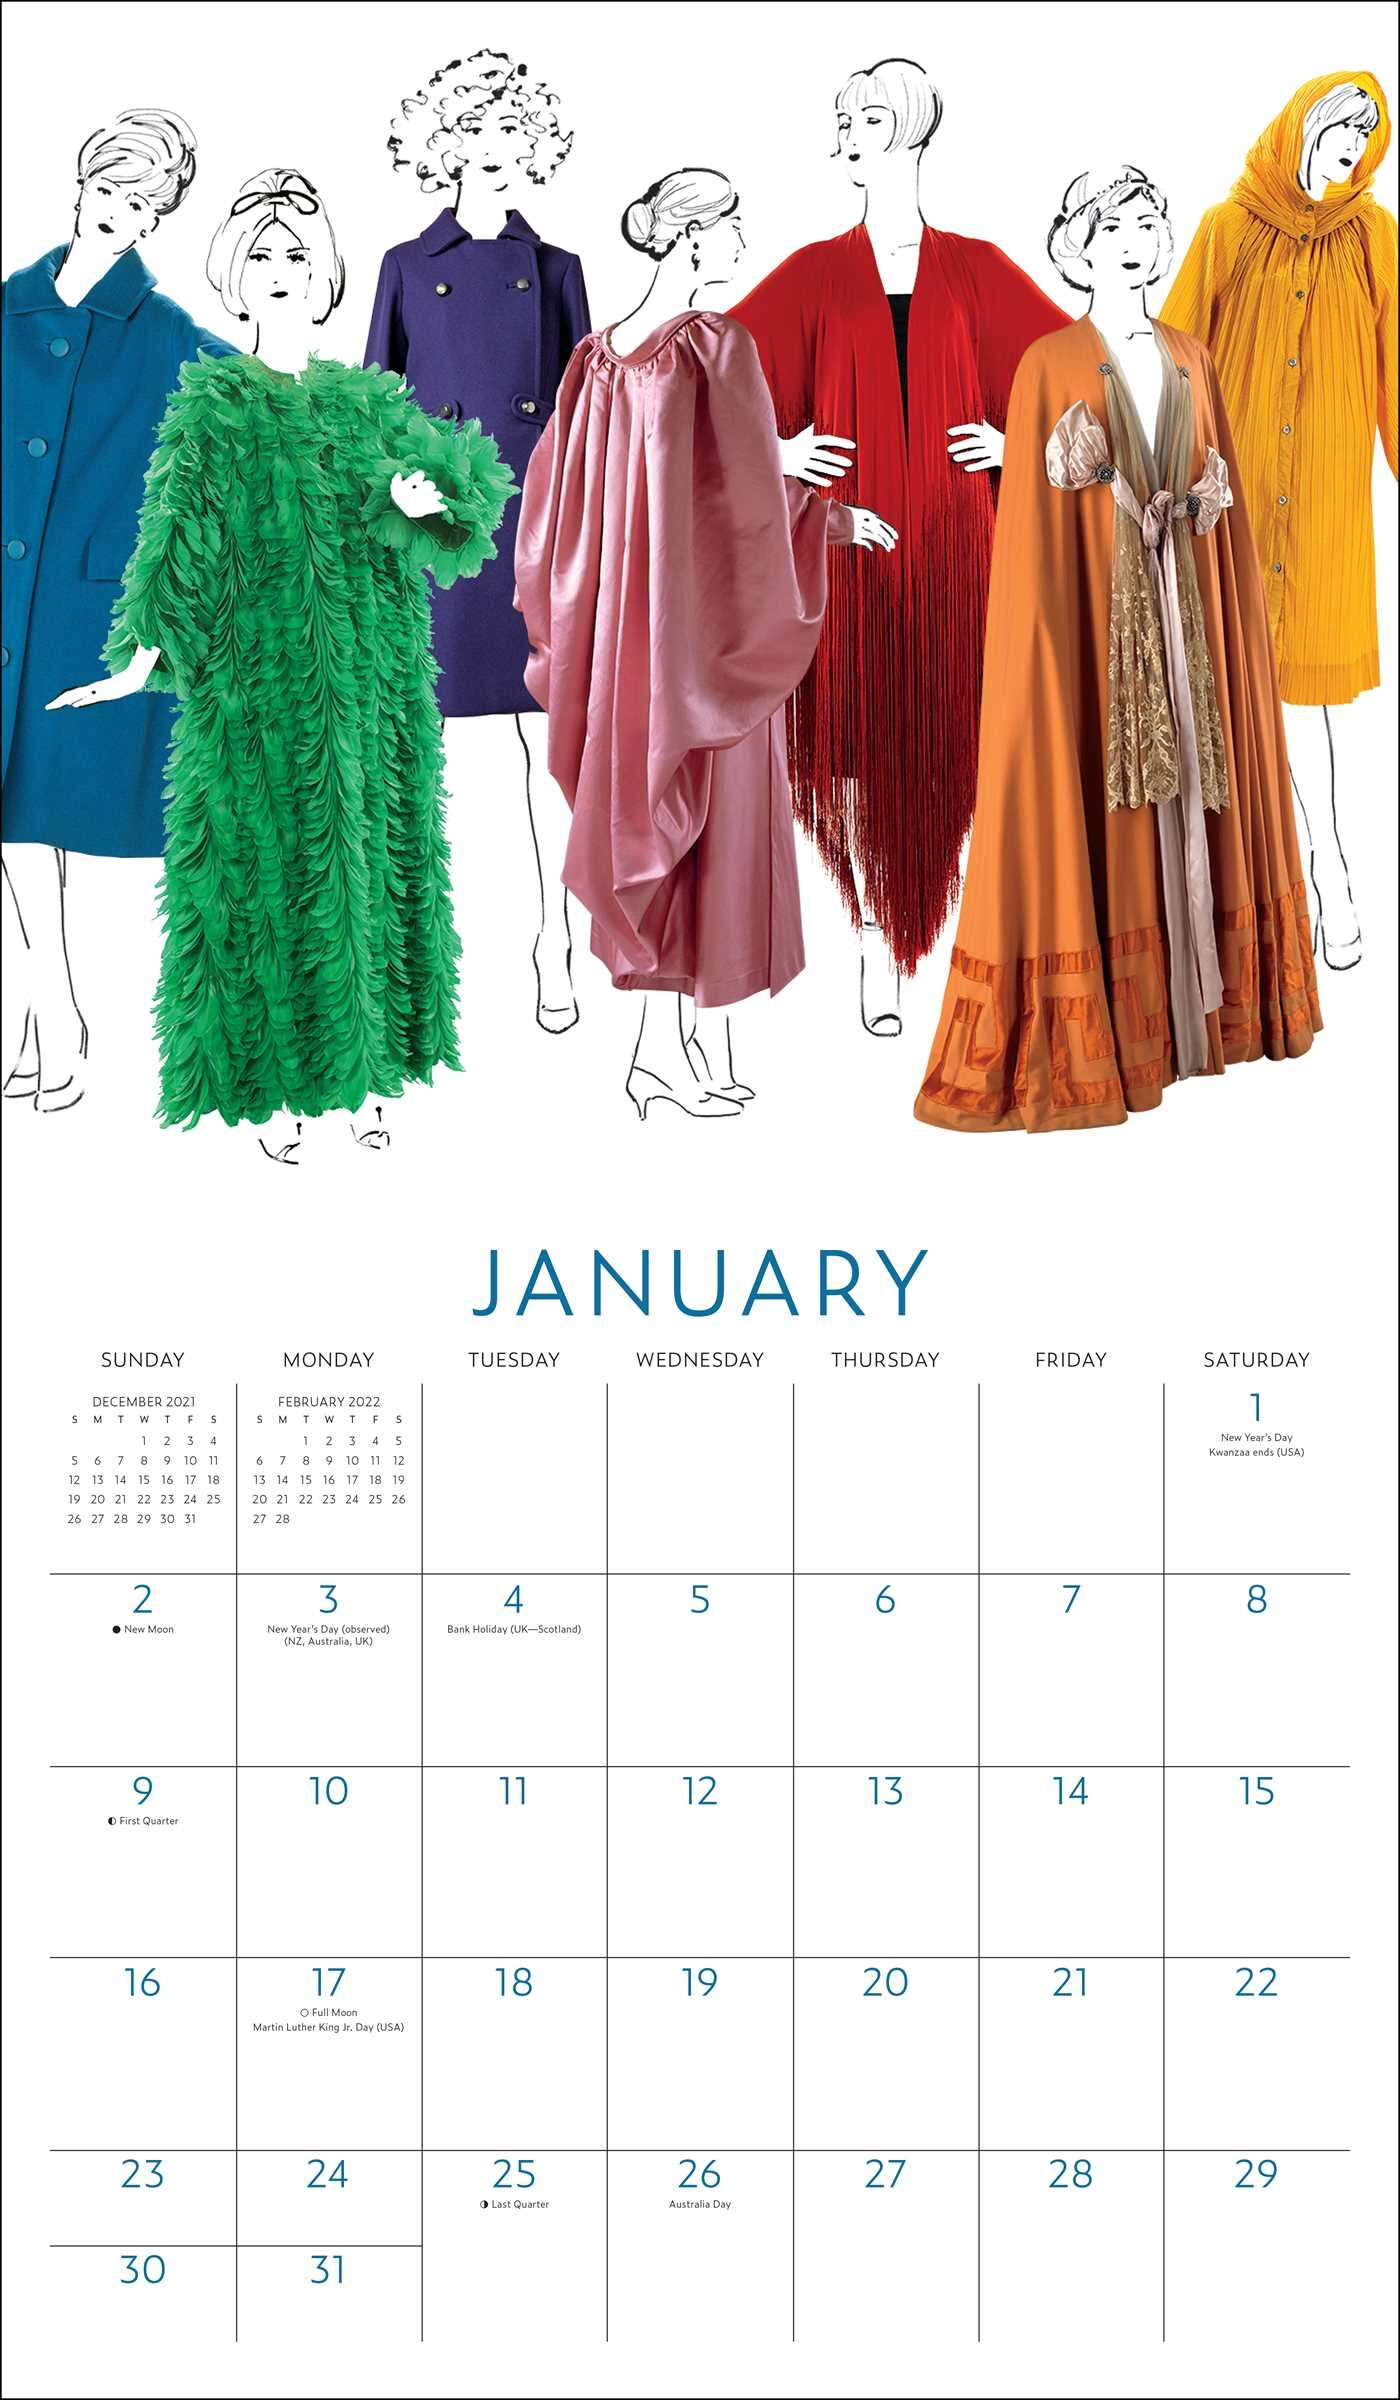 Ball State Calendar 2022.Fashion And The Costume Institute 75th Anniversary 2022 Wall Calendar Book Summary Video Official Publisher Page Simon Schuster